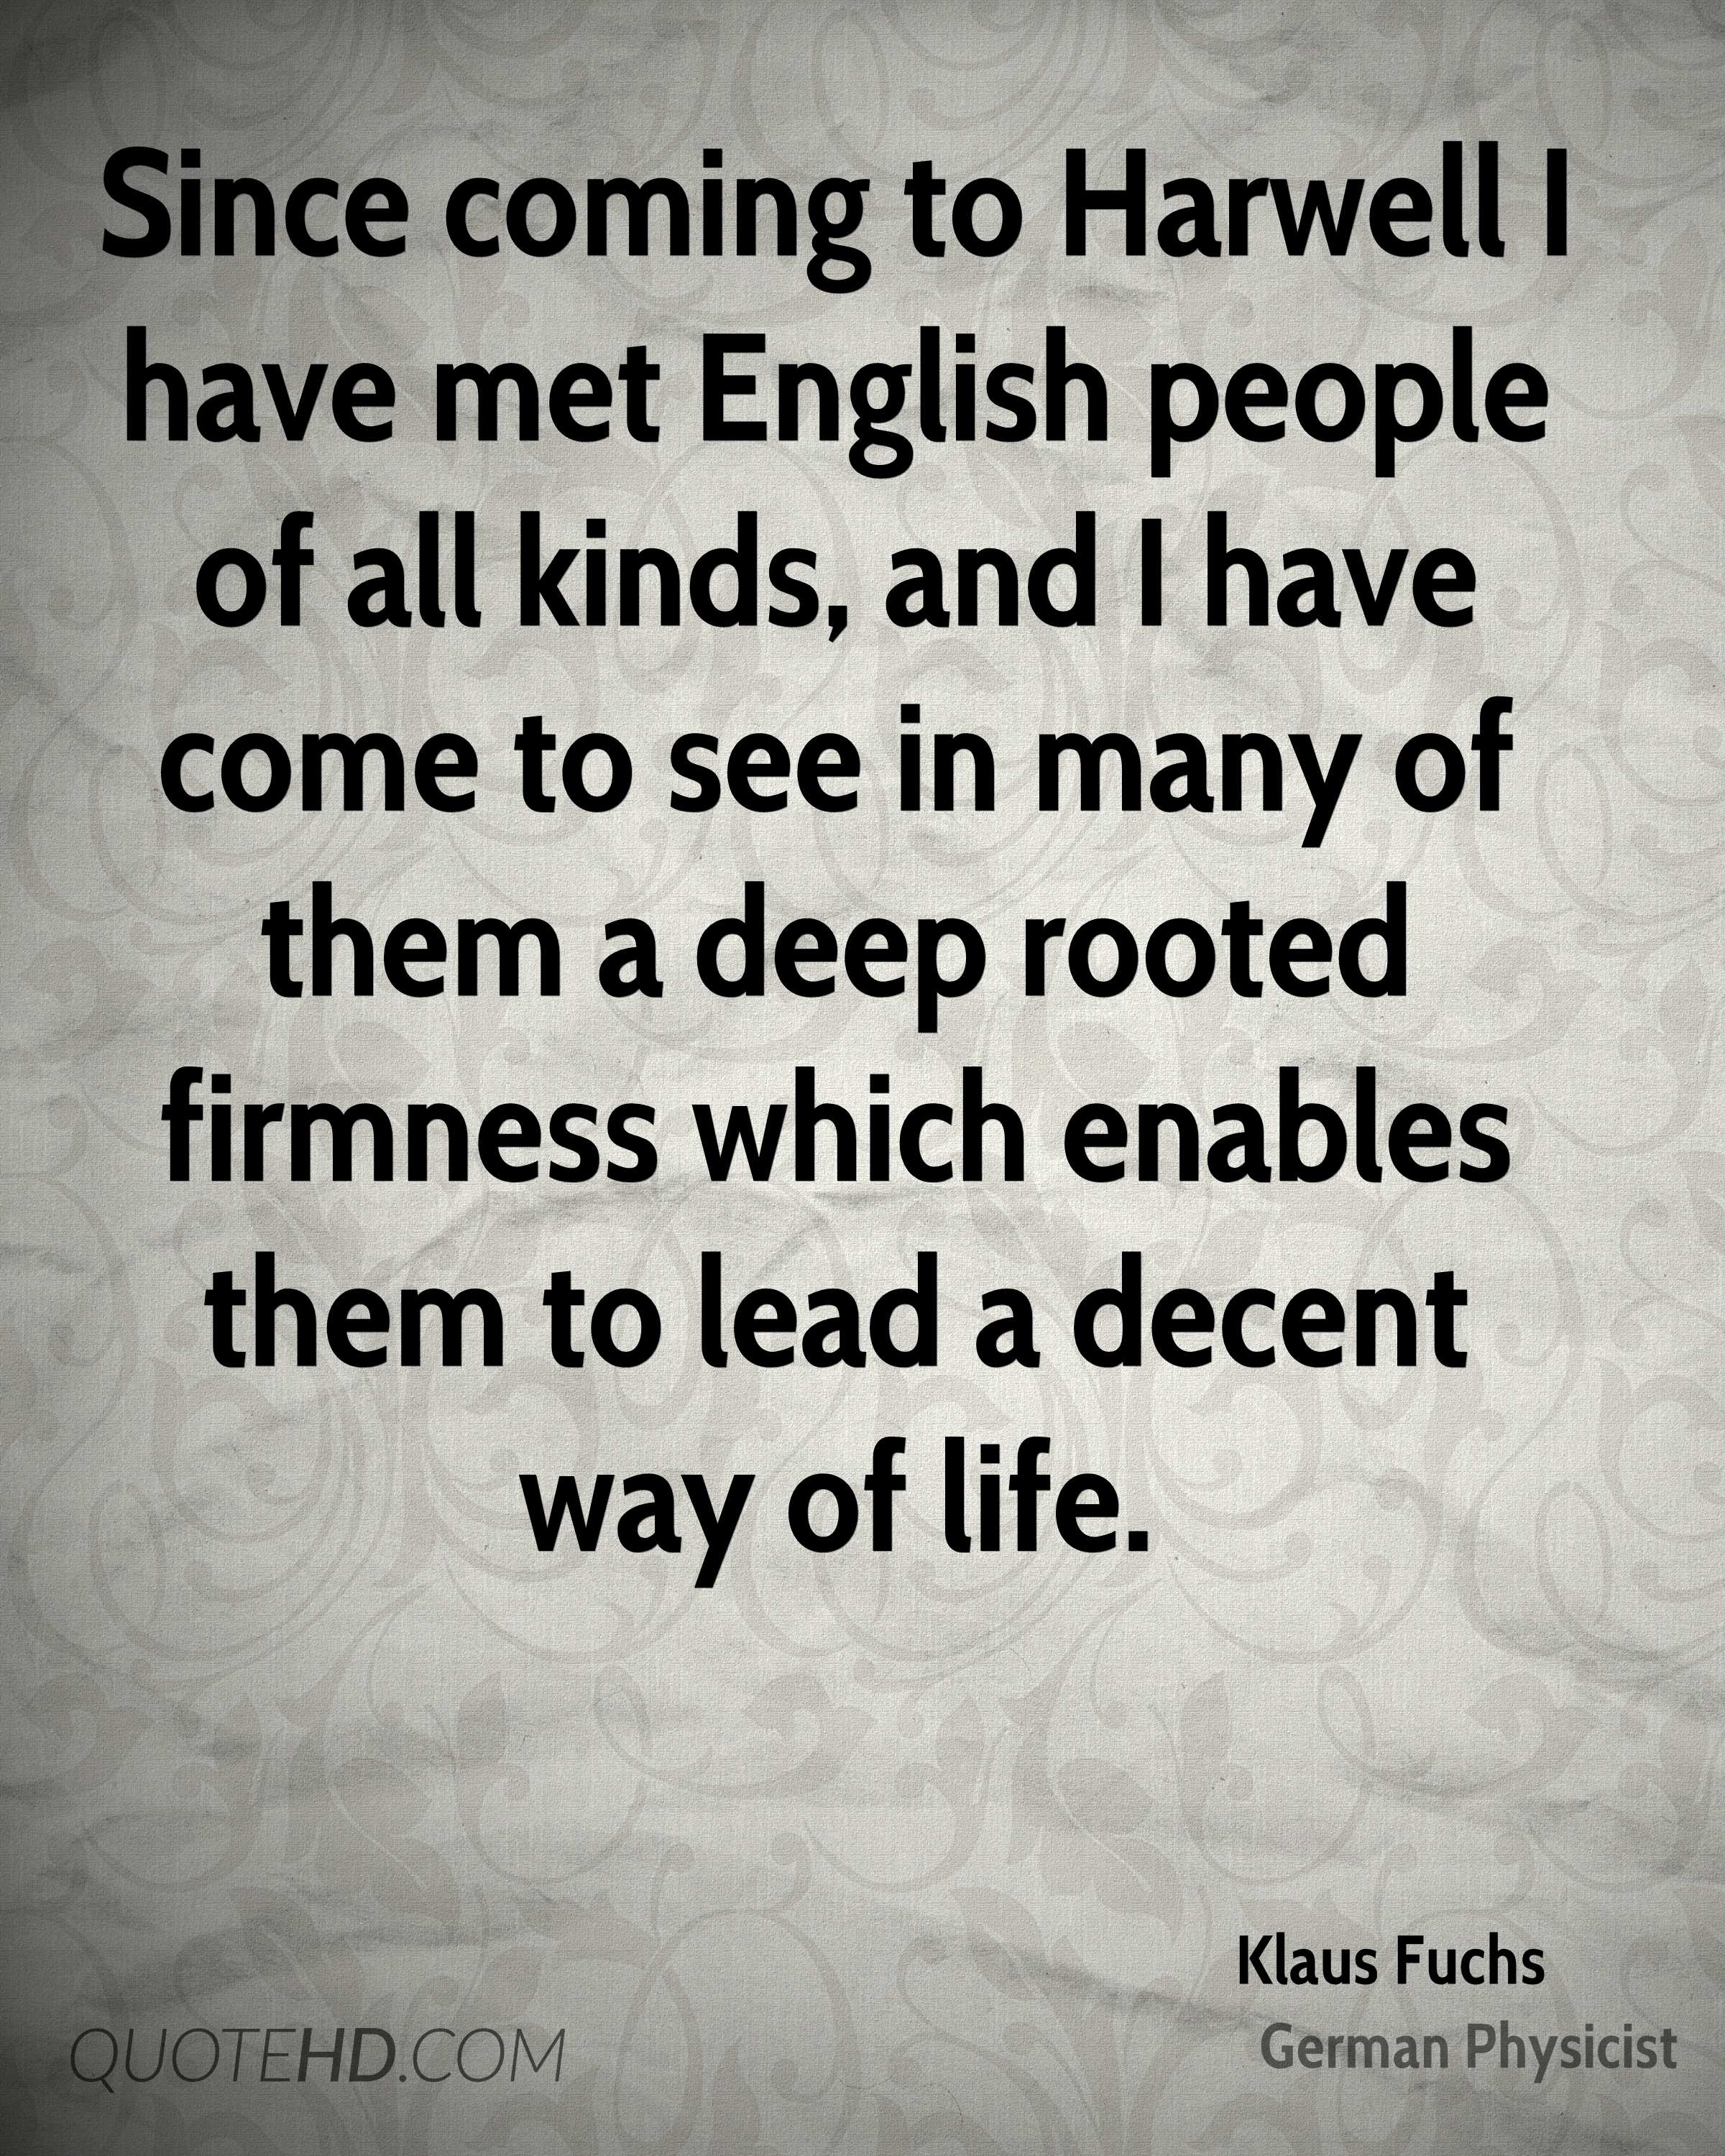 Since coming to Harwell I have met English people of all kinds, and I have come to see in many of them a deep rooted firmness which enables them to lead a decent way of life.